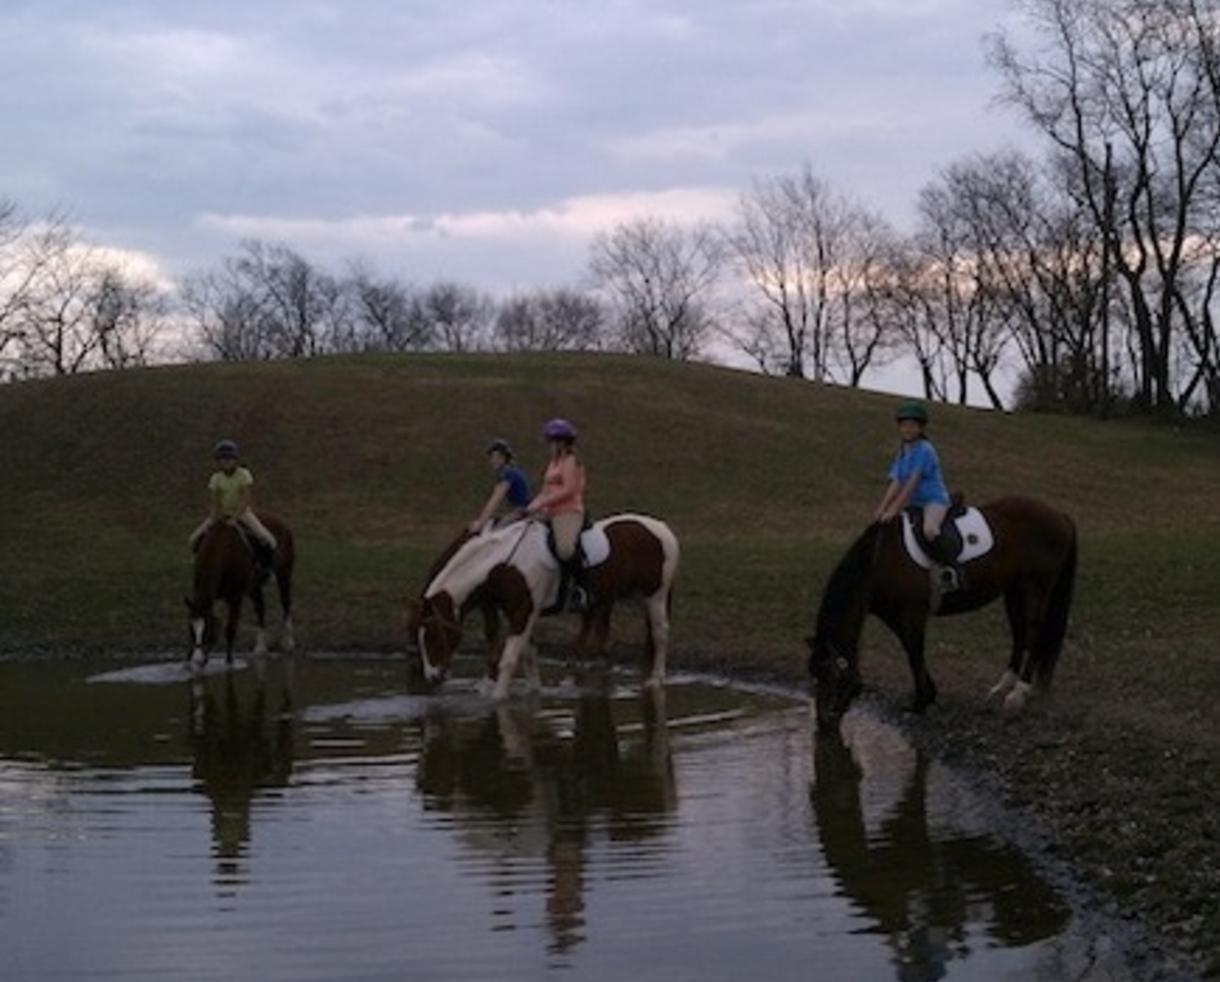 $39 for a 75 minute Trail ride and lesson at Waredaca Farm - Laytonsville (35% off)